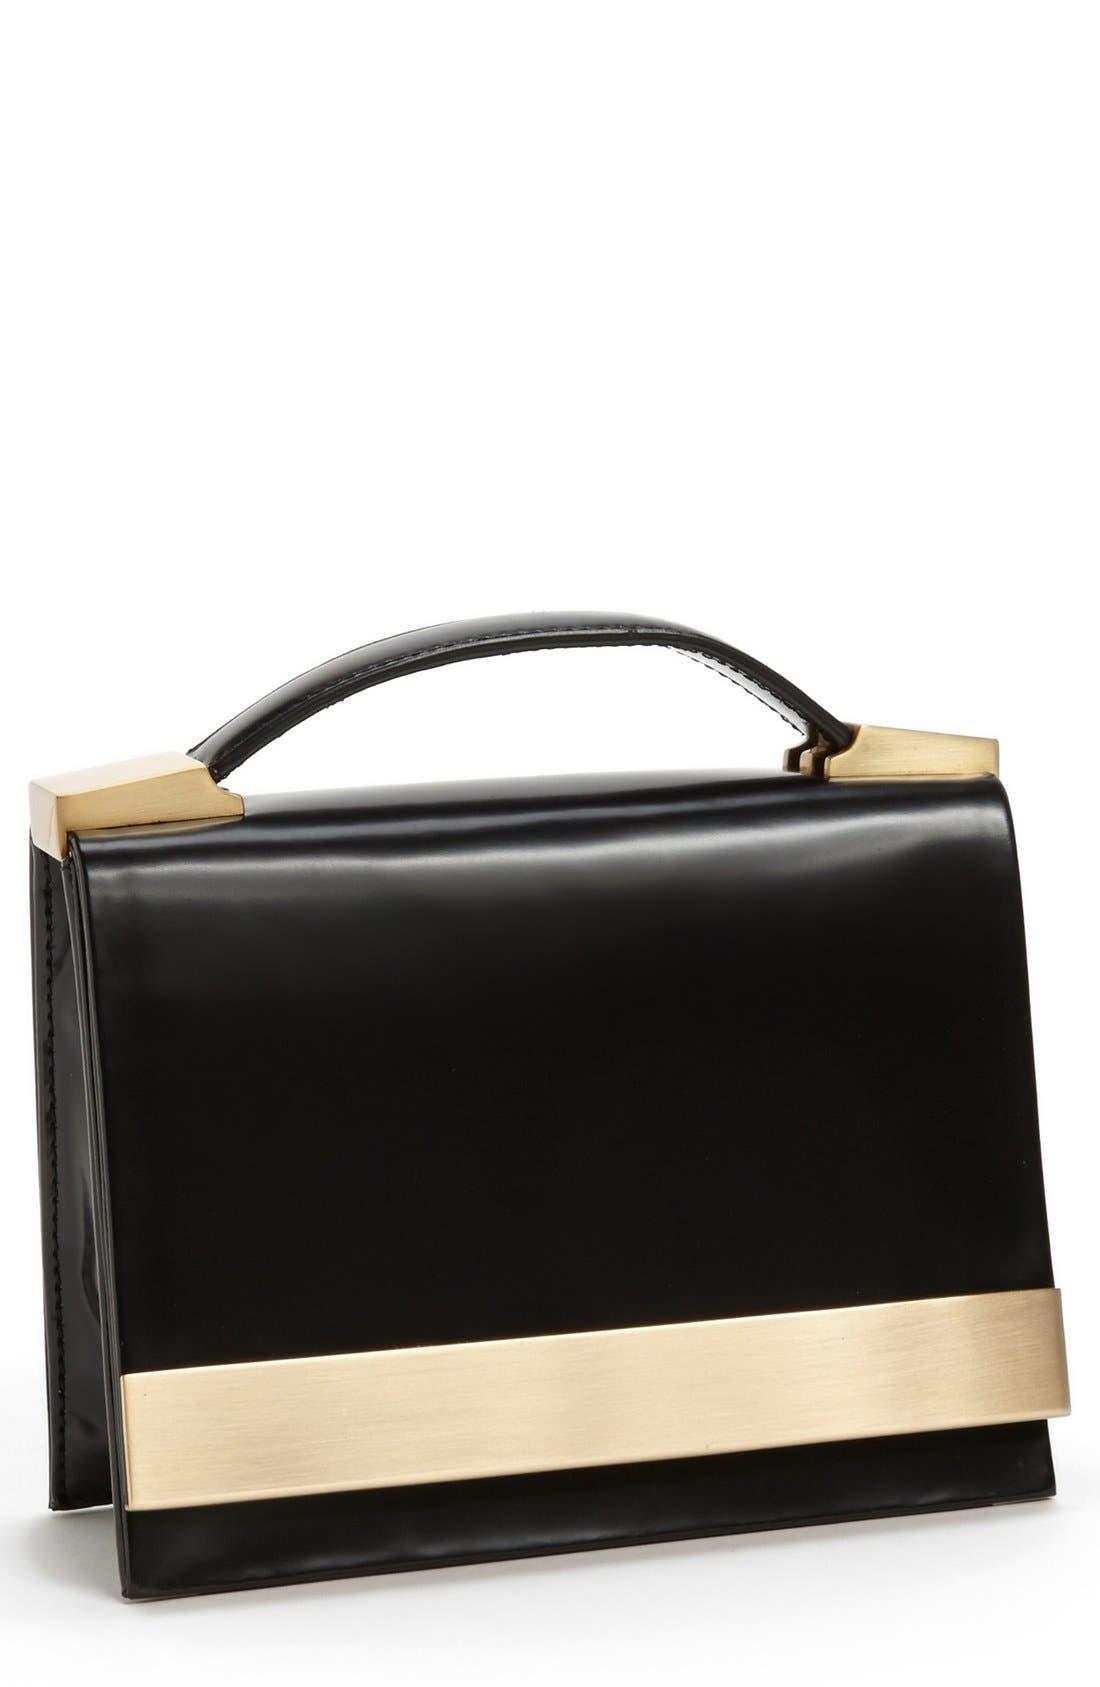 Main Image - B Brian Atwood 'Ava' Top Handle Clutch